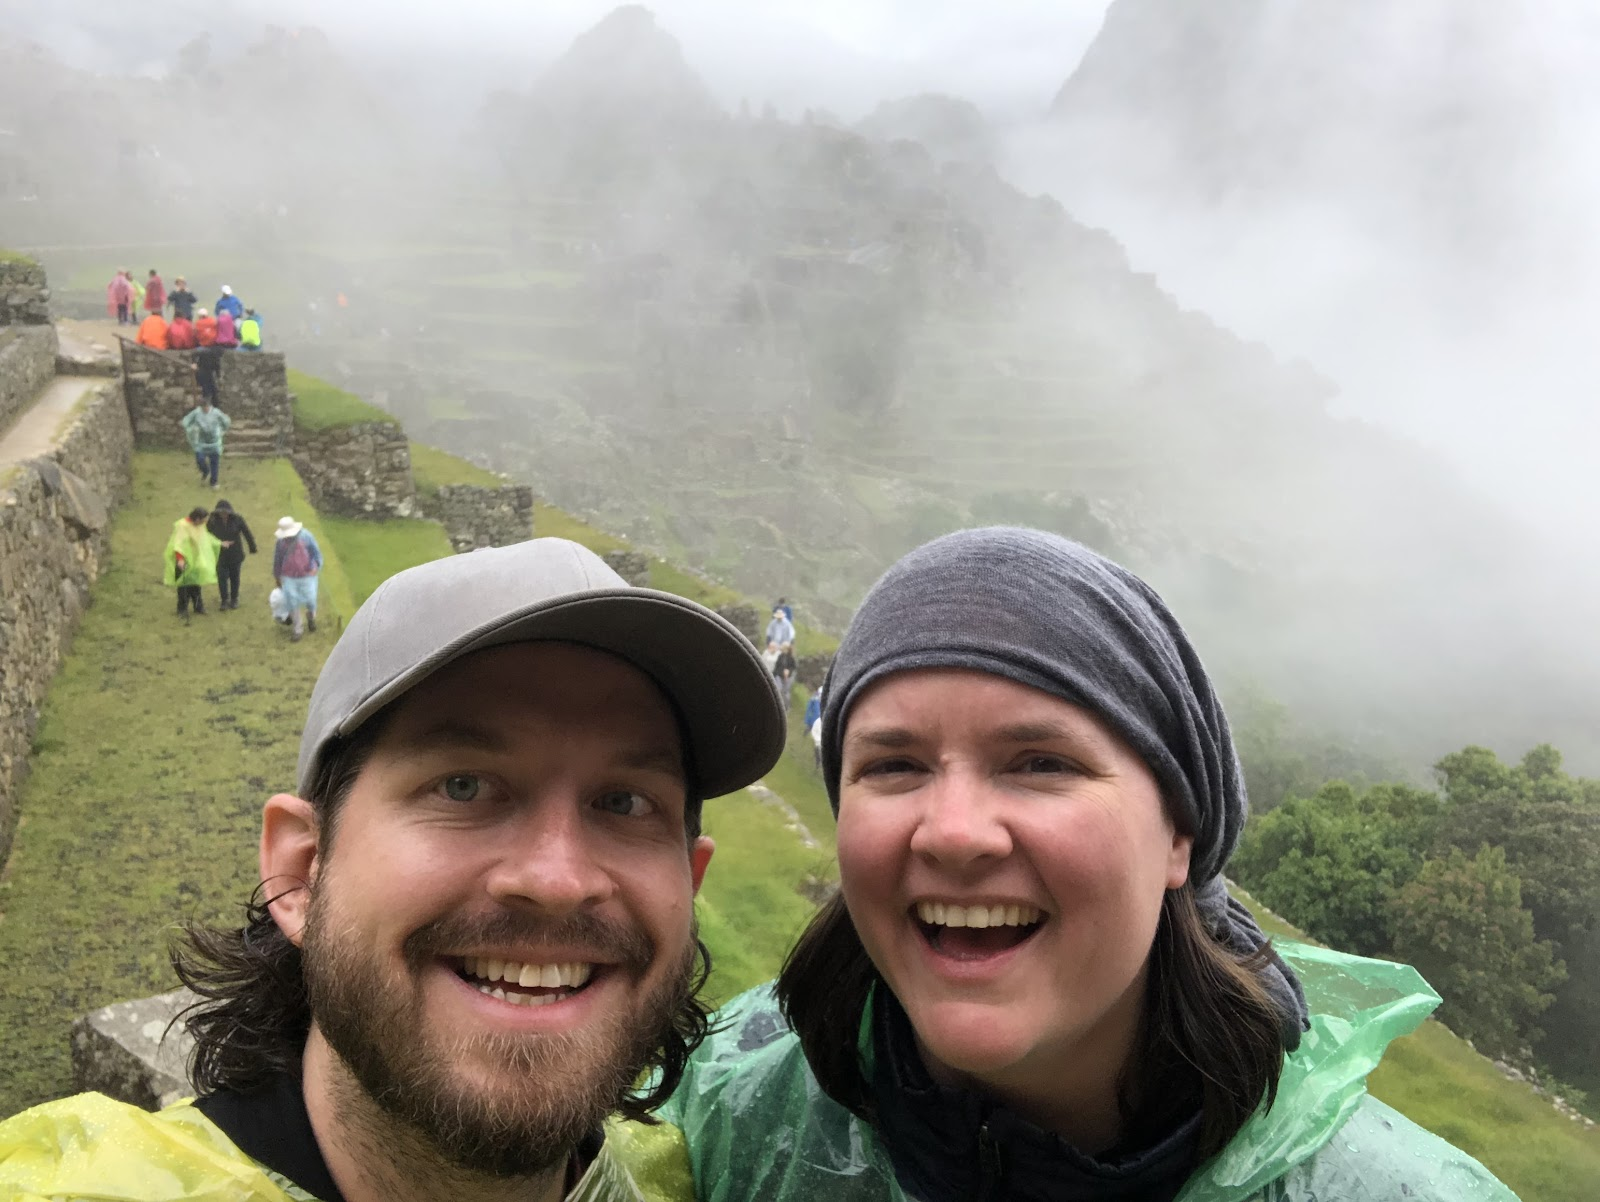 1SE team members Sami and Megan smile at the foggy summit of the Inca Trail in Peru.